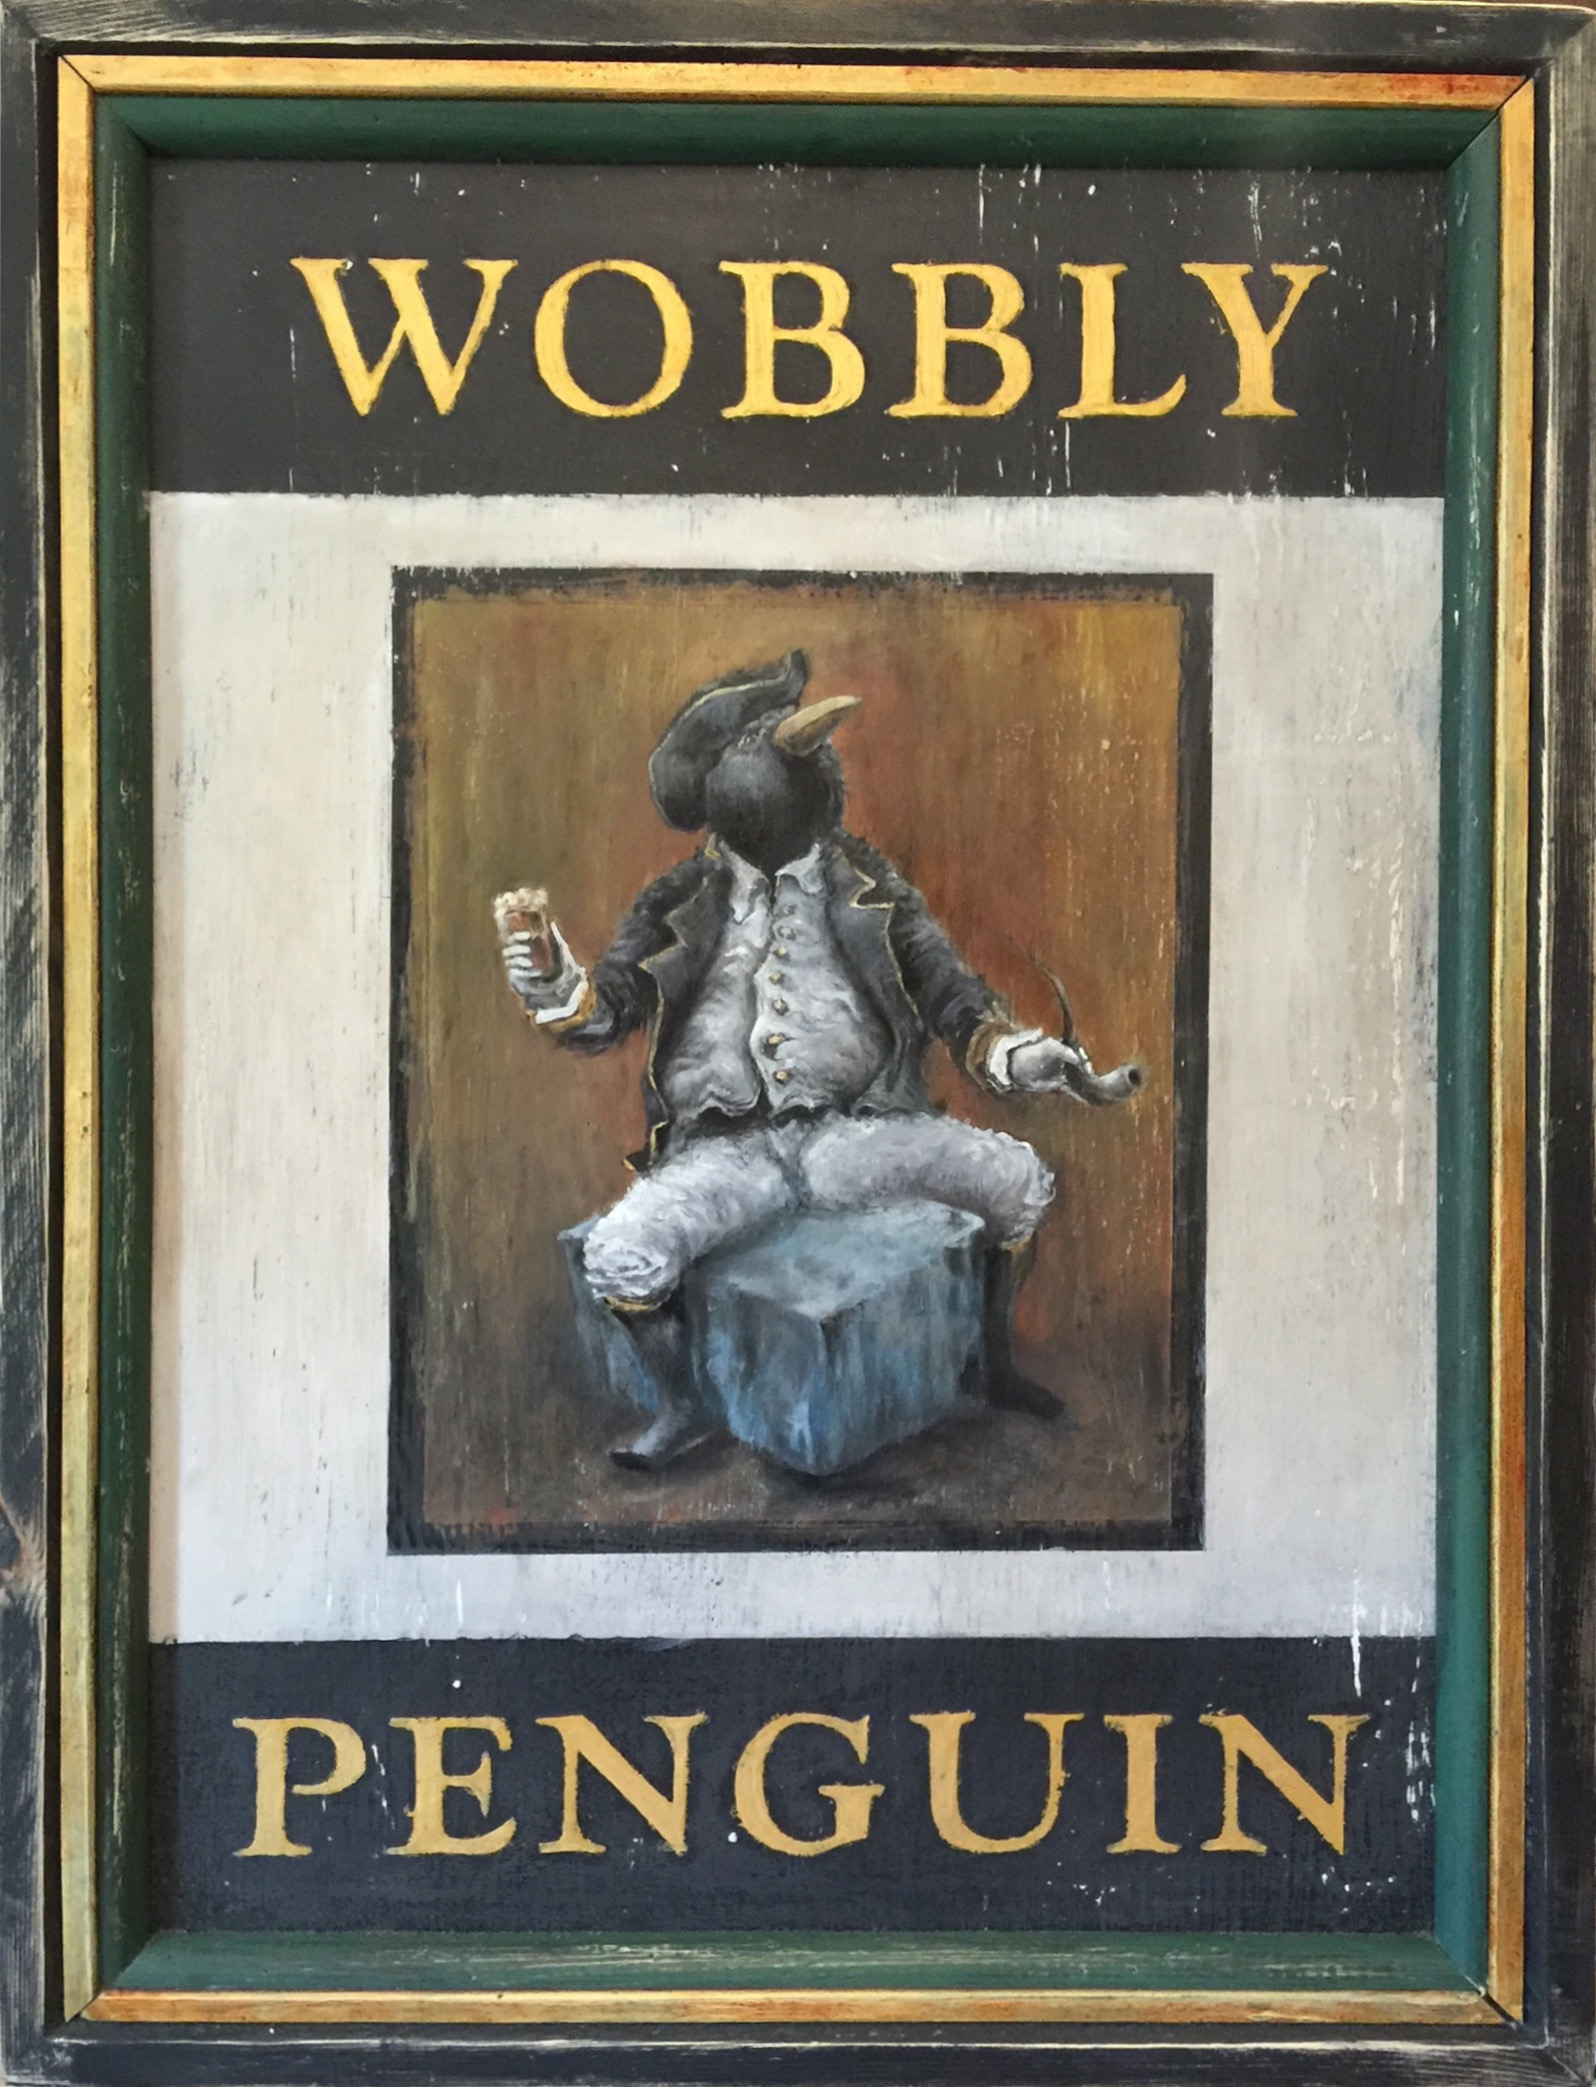 The Wobbly Penguin (front side)